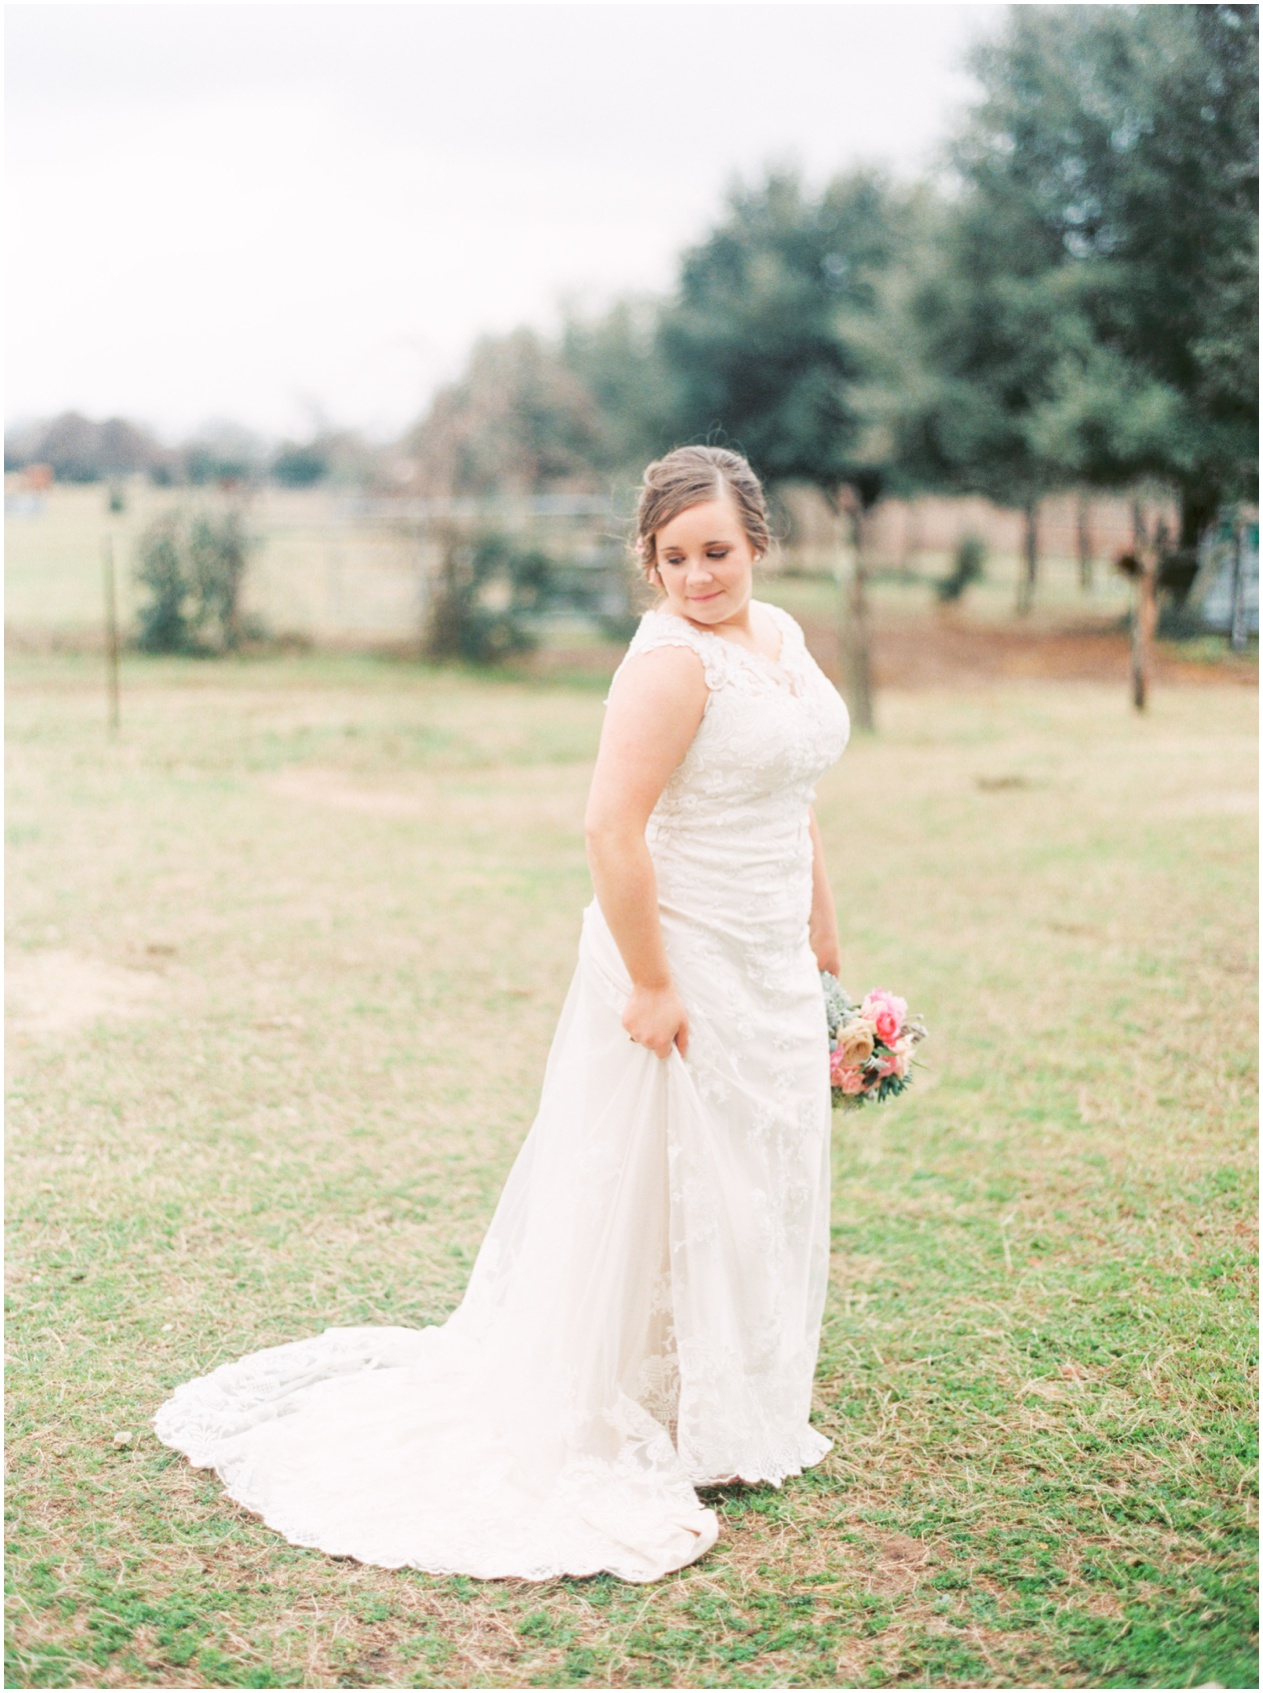 Sarah Best Photography - Claire's Bridals - The Amish Barn at Edge-15_STP.jpg